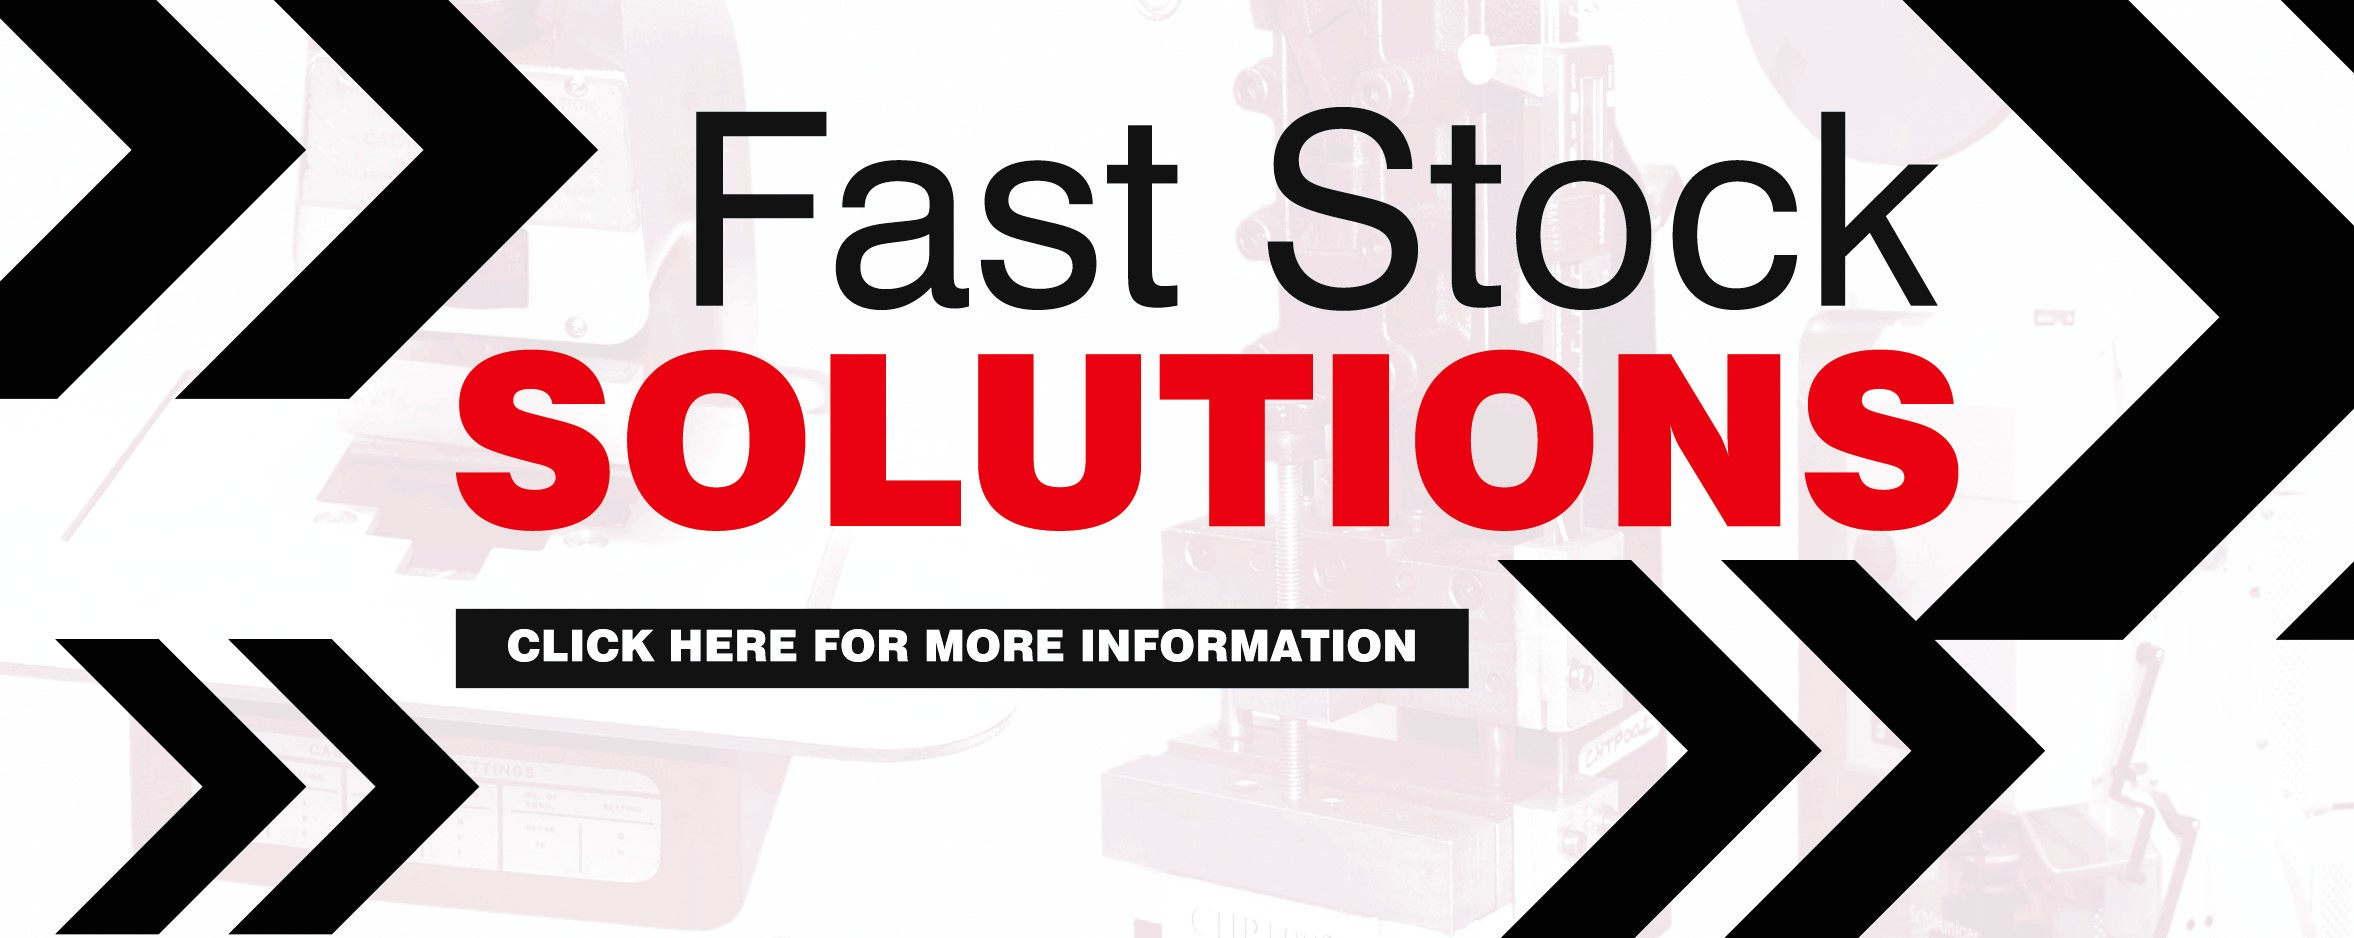 Fast Stock Solutions